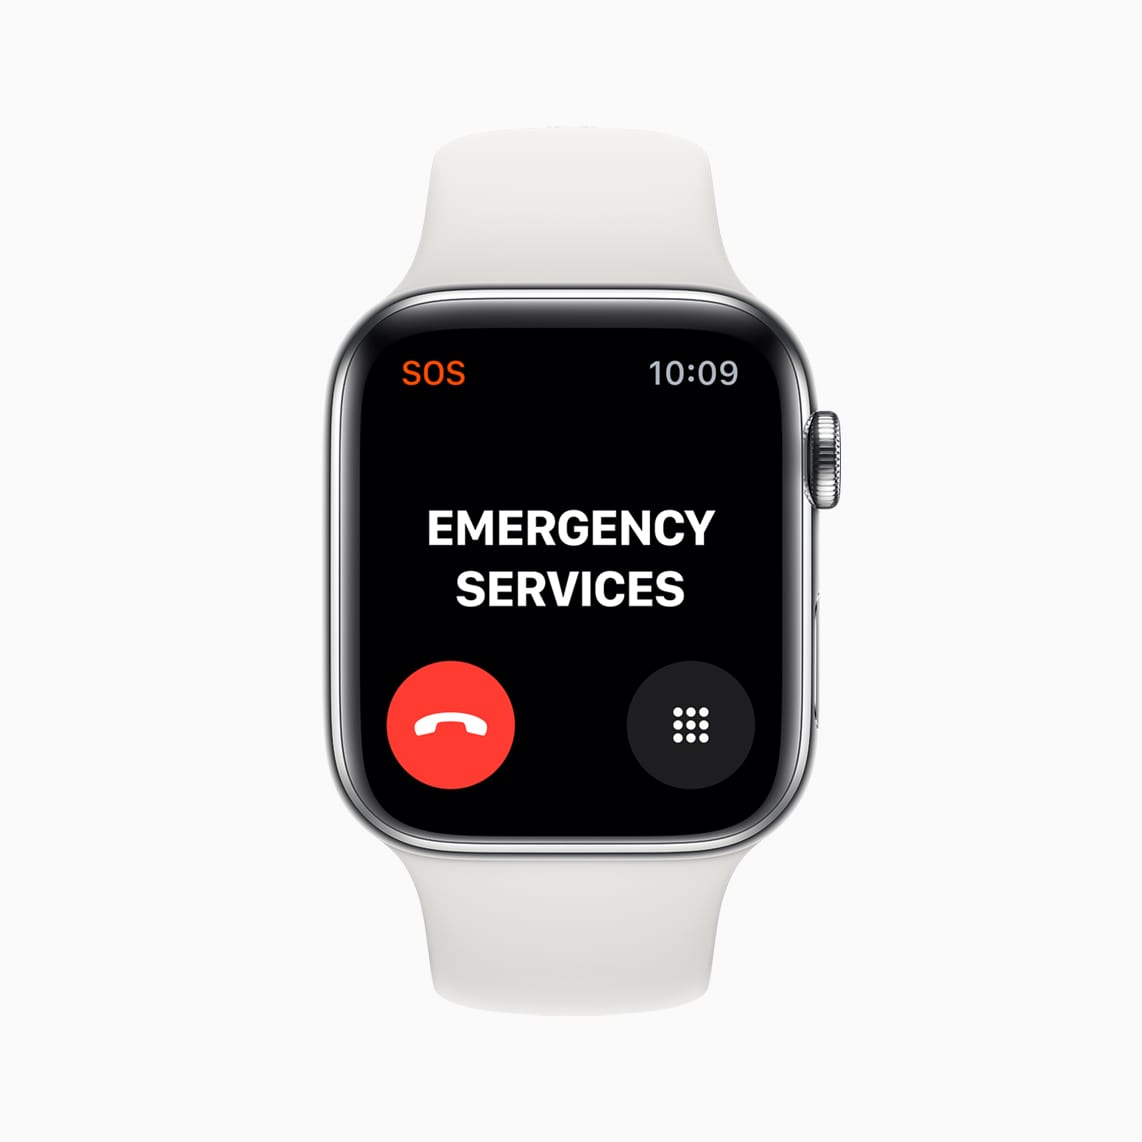 Apple Watch Series 5 can now complete calls to emergency services when traveling internationally. (image via Apple)